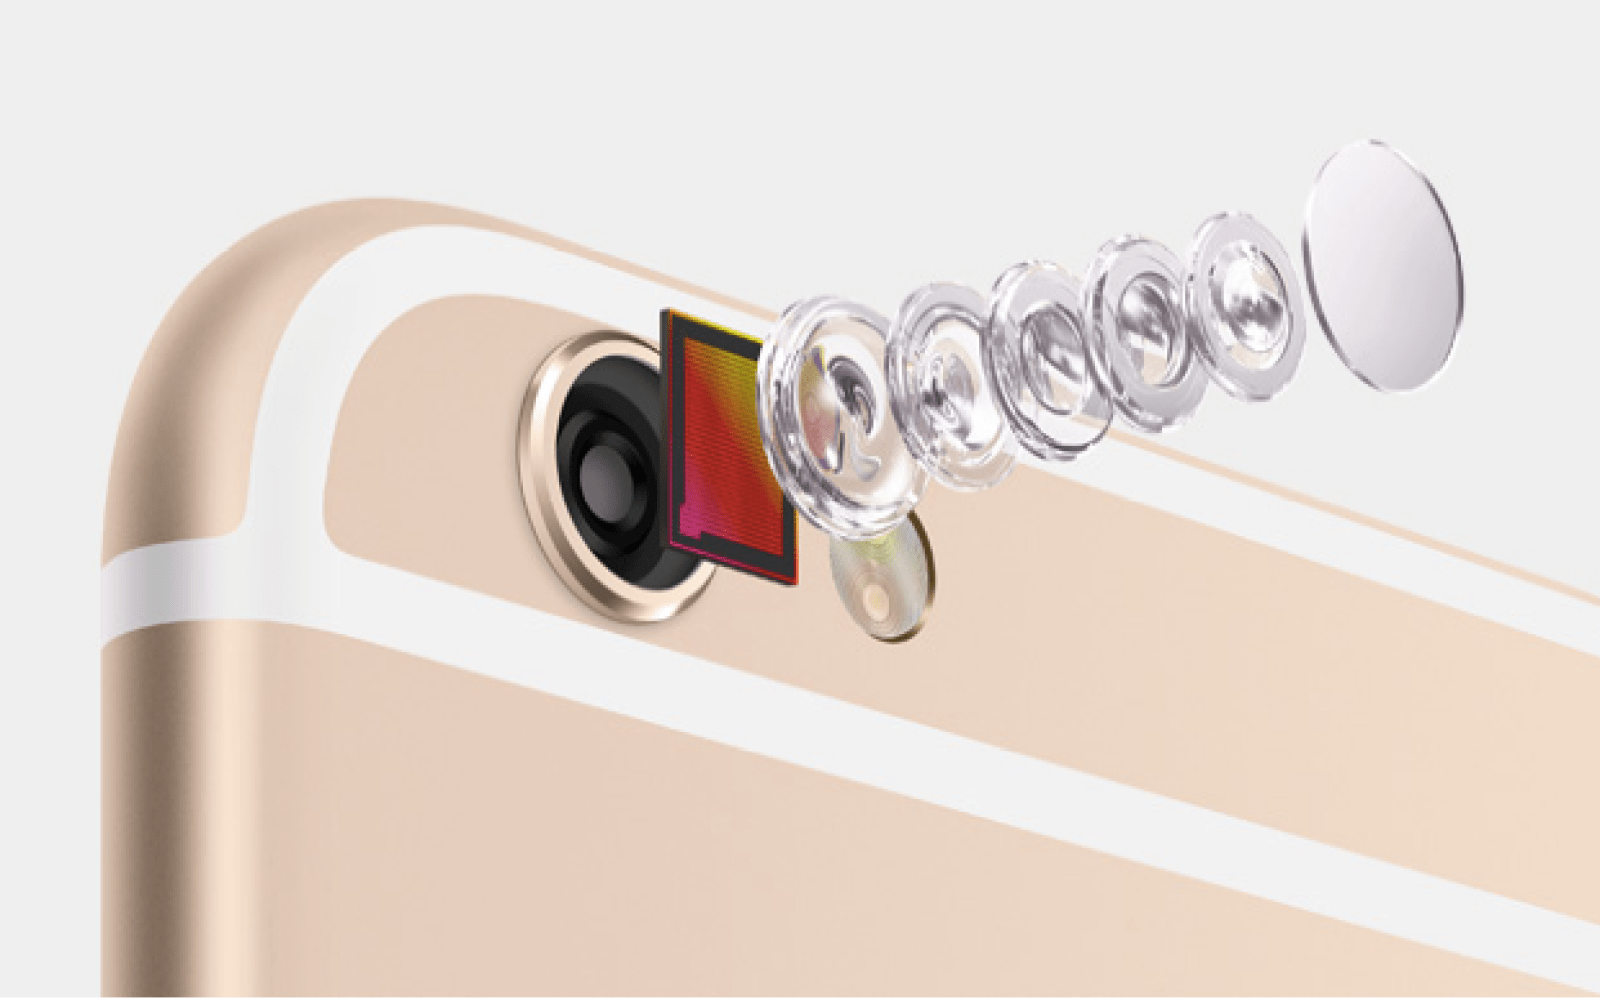 iOS 9 code hints 1080p, 240fps, flash coming to iPhone FaceTime cameras